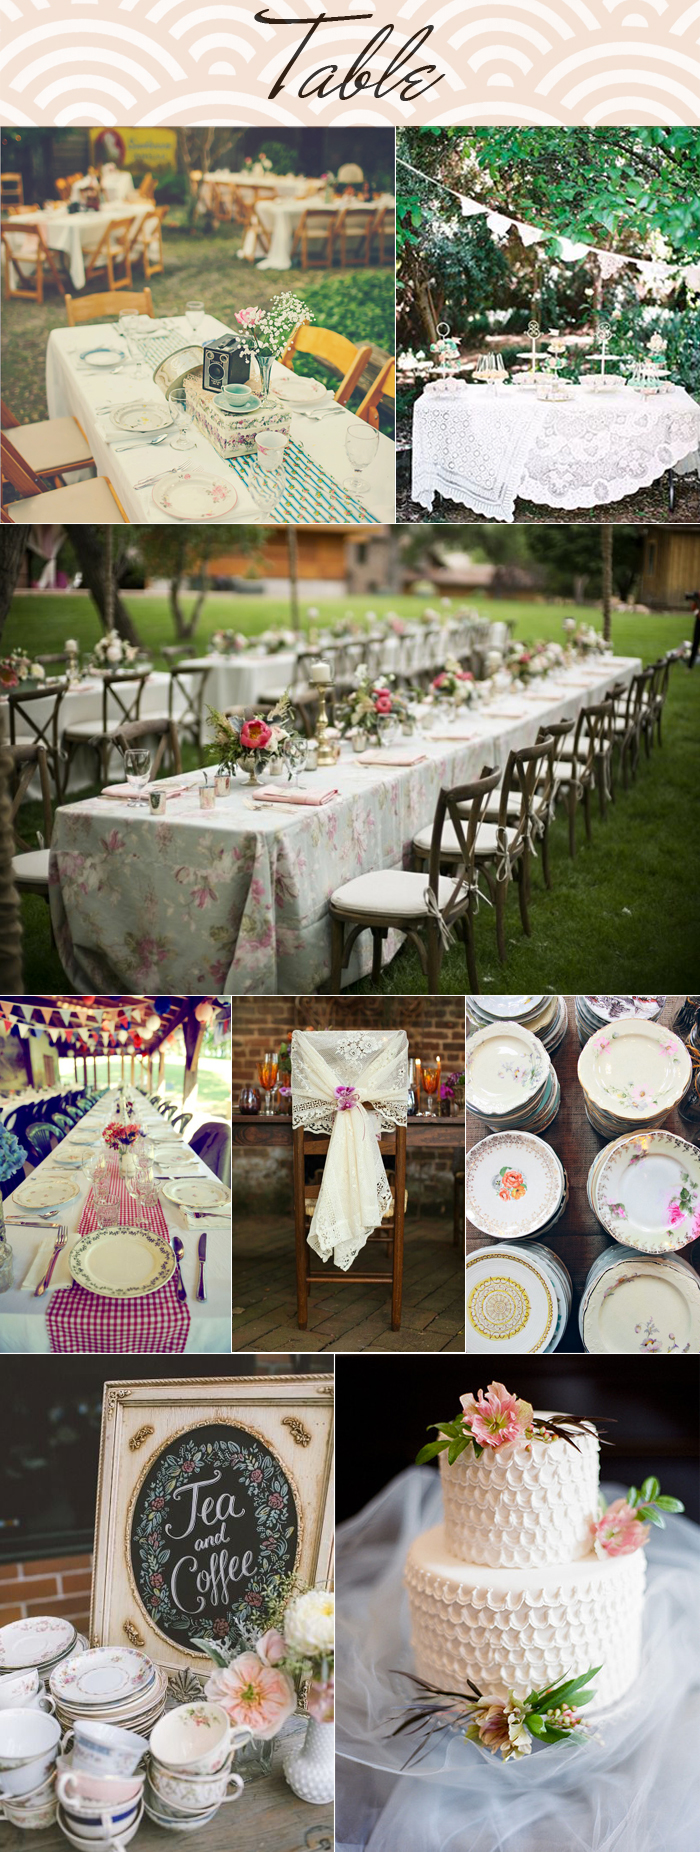 table-inspiration-party-vintage-mademoiselle-claudine